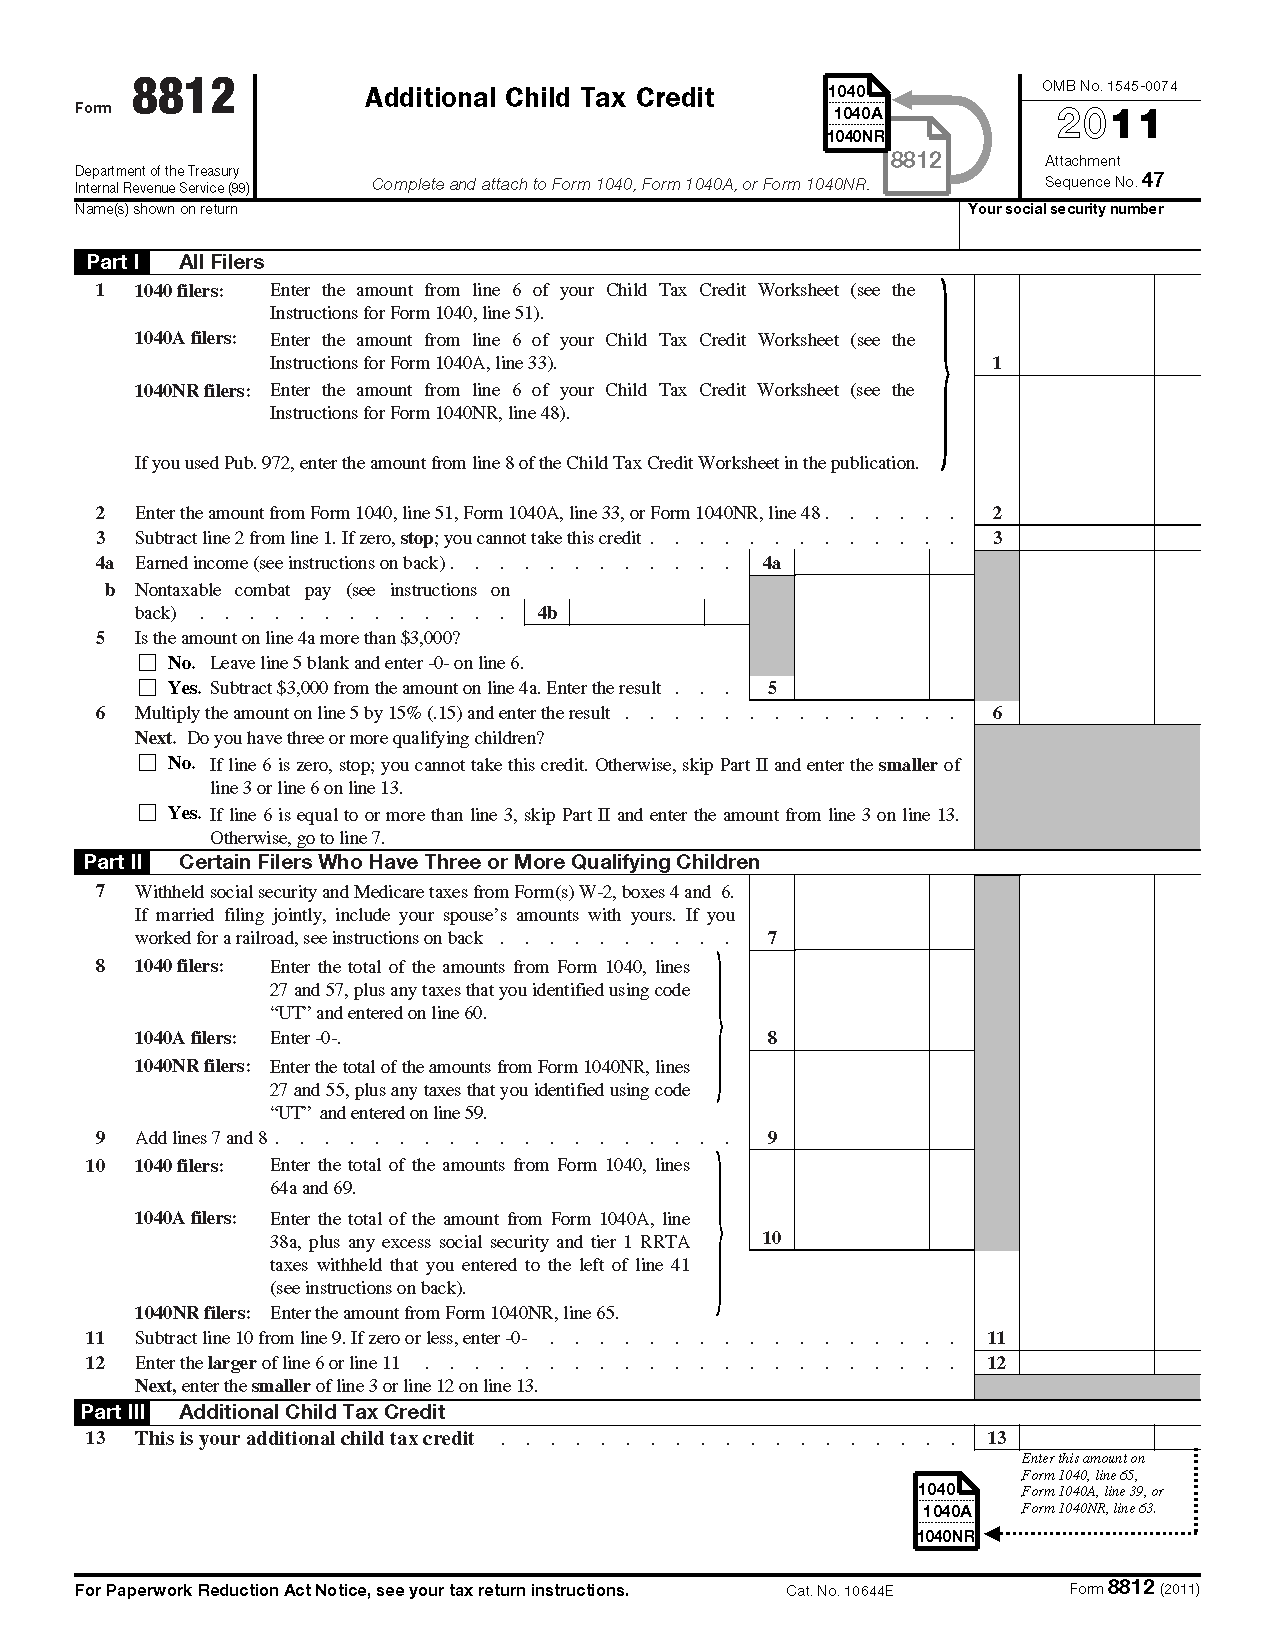 Worksheets Child Tax Credit Worksheet 2013 printables form 8812 worksheet eatfindr worksheets additional child tax credit view all 2011 irs forms